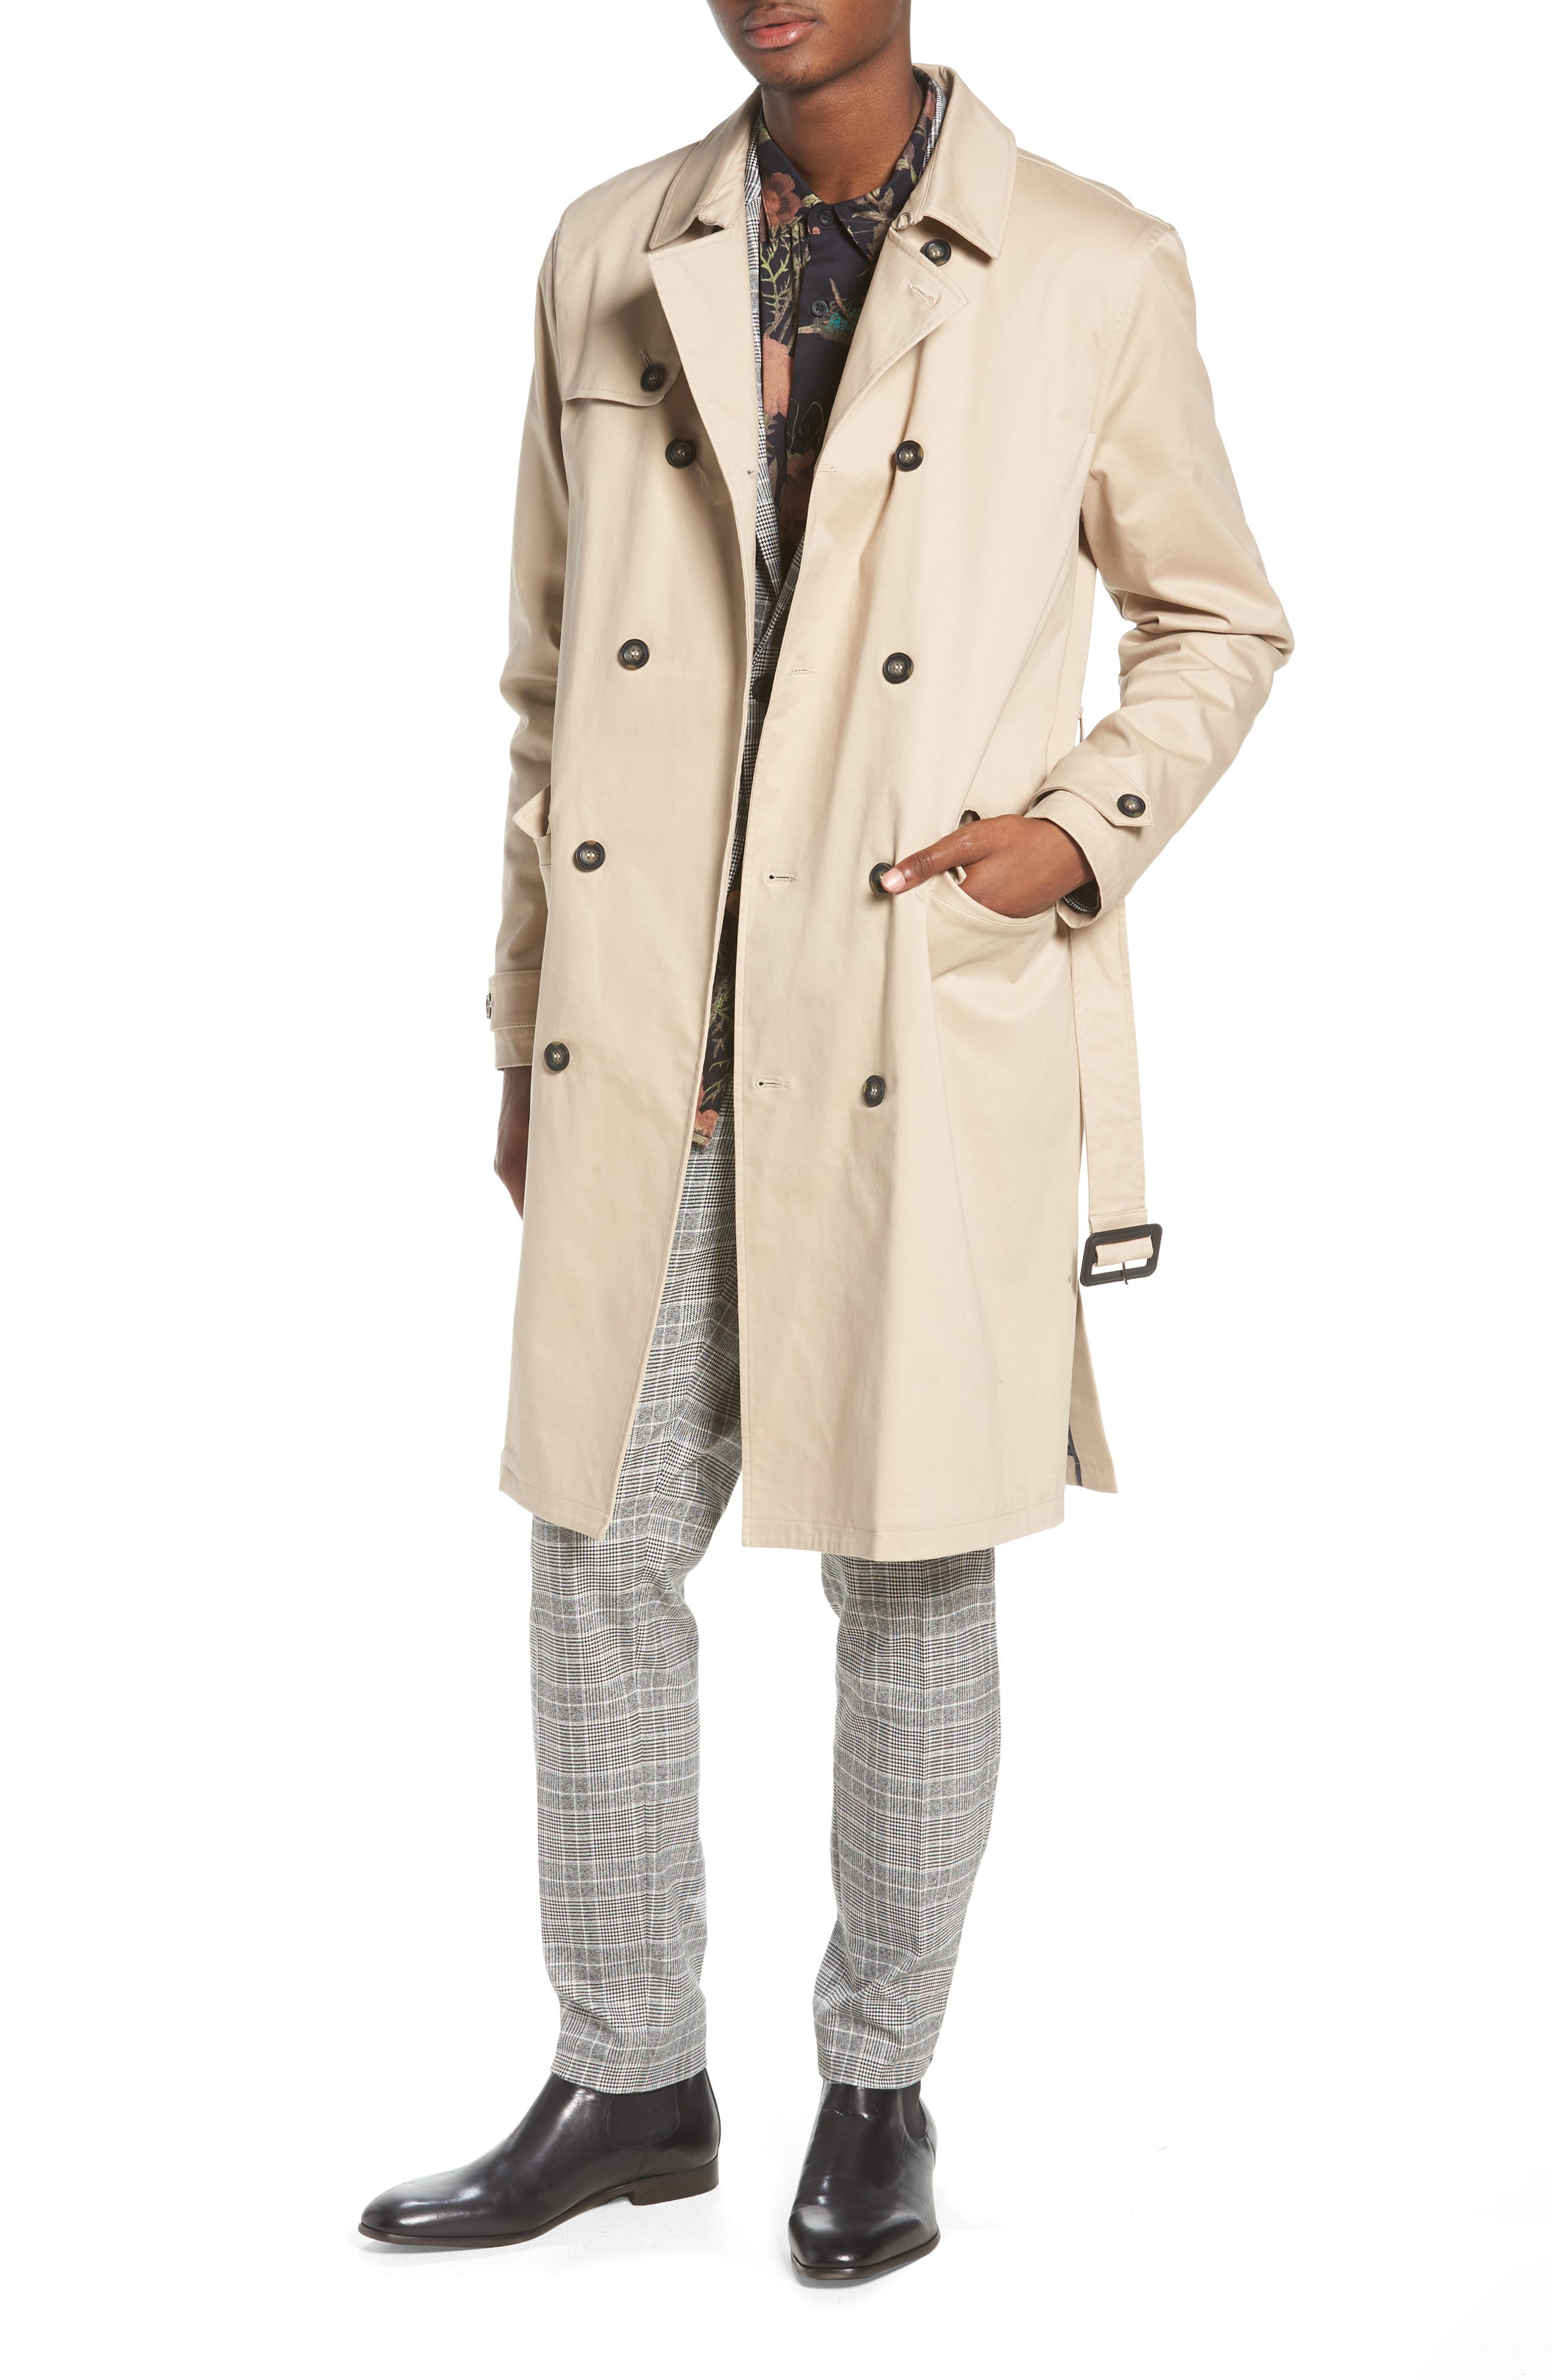 Men's Vintage Style Coats and Jackets Mens Topman Peached Trench Coat Size X-Small - Beige $64.99 AT vintagedancer.com